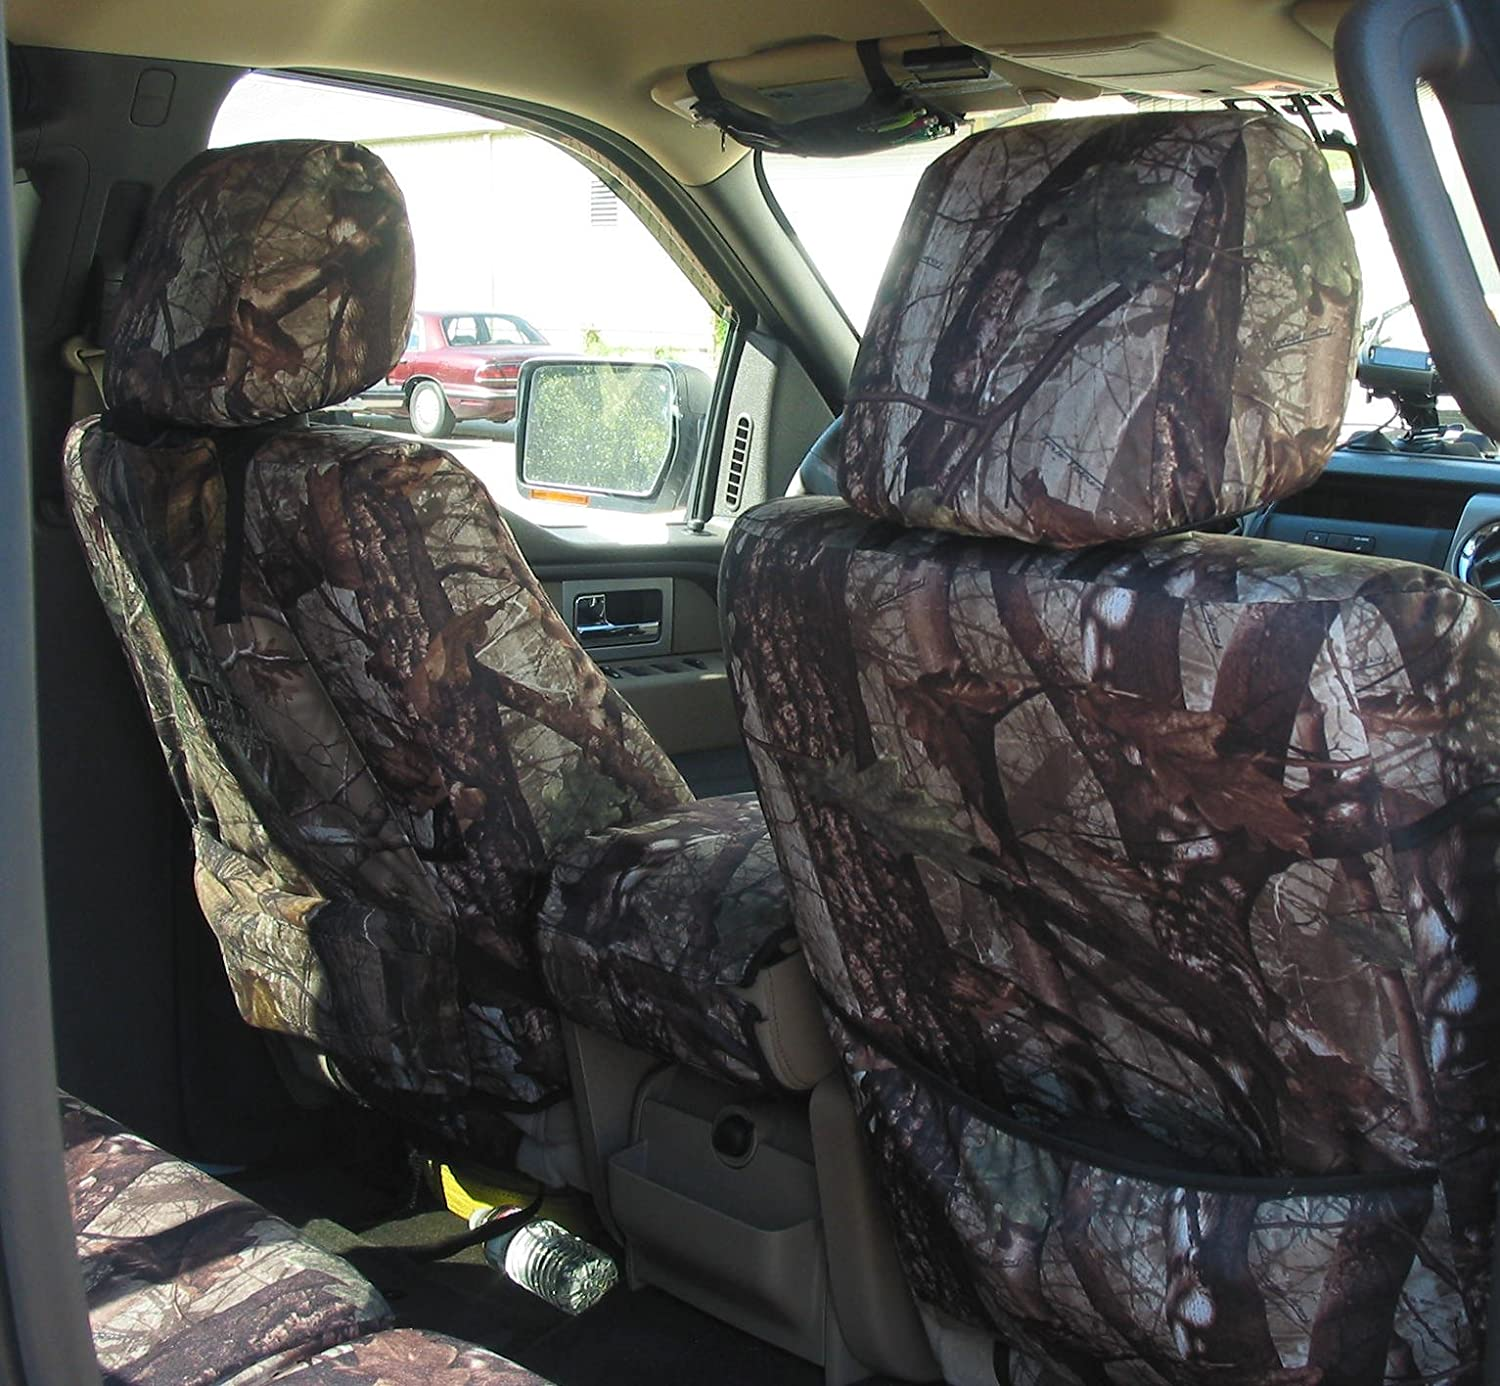 DS1 Camo Waterproof Endura Exact Seat Covers 2010 Ford F150 XLT Super Crew Front and Back Seat Set Custom Exact Fit Seat Covers FD49 DS1-E